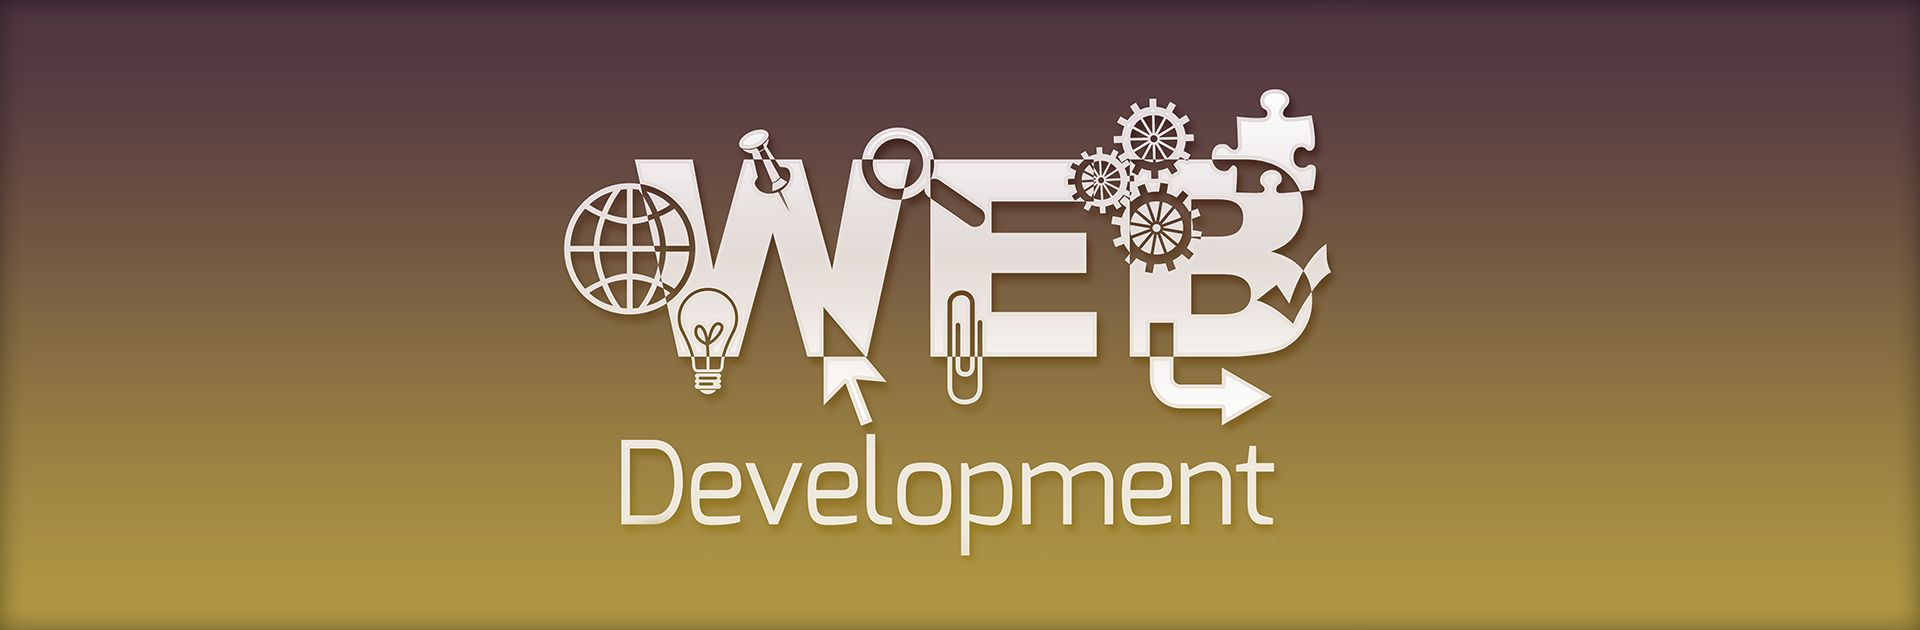 Web Development Quotes Ours Company Provide Affordable Web Development And Custom Design